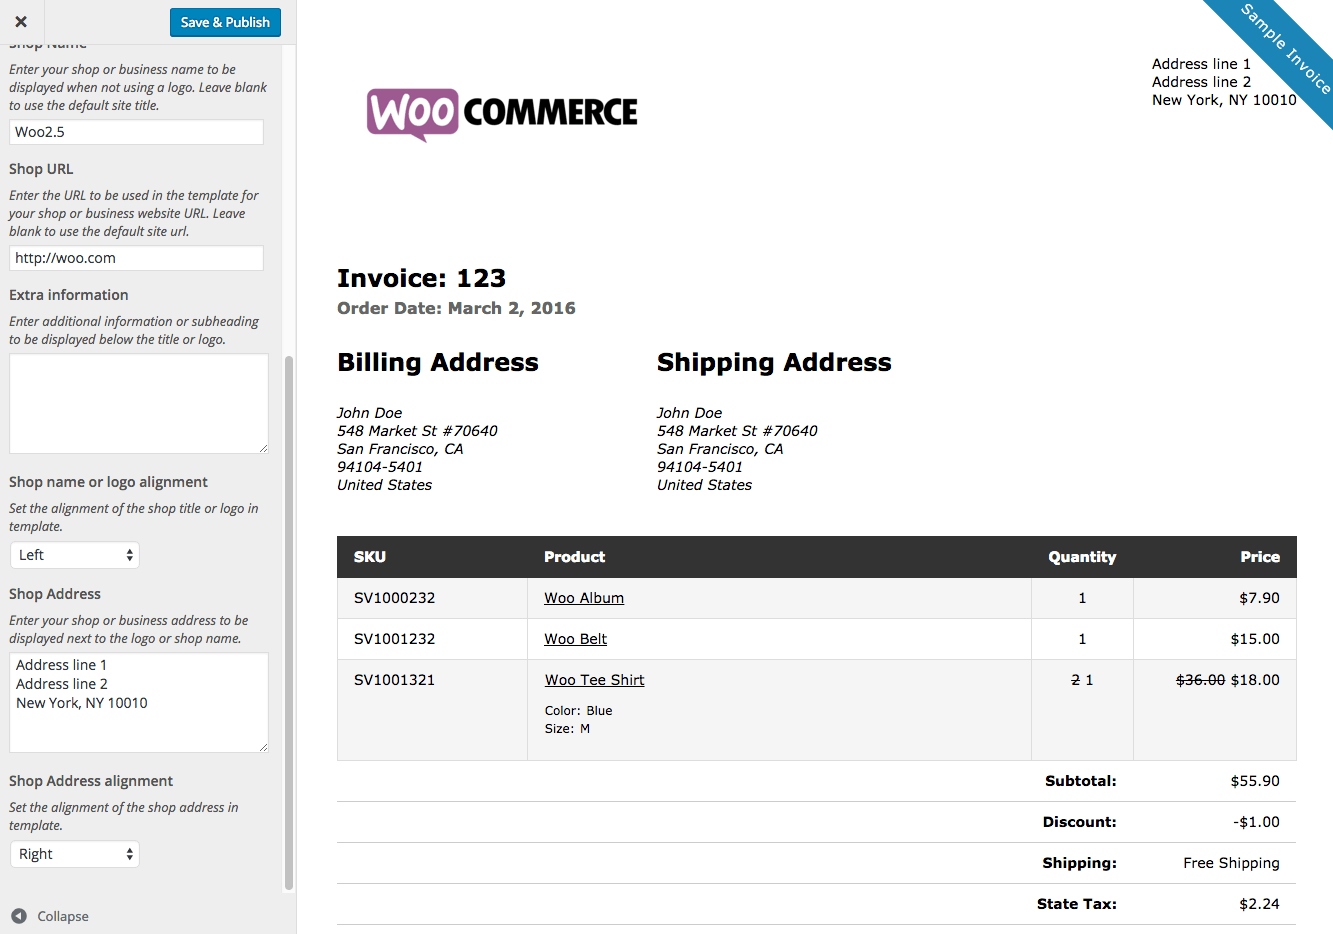 Usdgus  Wonderful Woocommerce Print Invoices Amp Packing Lists  Woocommerce Docs With Marvelous Woocommerce Print Invoices  Packing Lists Customizer With Amazing Invoice Format In Excel Also Letter For Invoice Payment In Addition How To Write An Invoice Uk And Billing Invoice Template Excel As Well As Invoice What Does It Mean Additionally How To Layout An Invoice From Docswoocommercecom With Usdgus  Marvelous Woocommerce Print Invoices Amp Packing Lists  Woocommerce Docs With Amazing Woocommerce Print Invoices  Packing Lists Customizer And Wonderful Invoice Format In Excel Also Letter For Invoice Payment In Addition How To Write An Invoice Uk From Docswoocommercecom